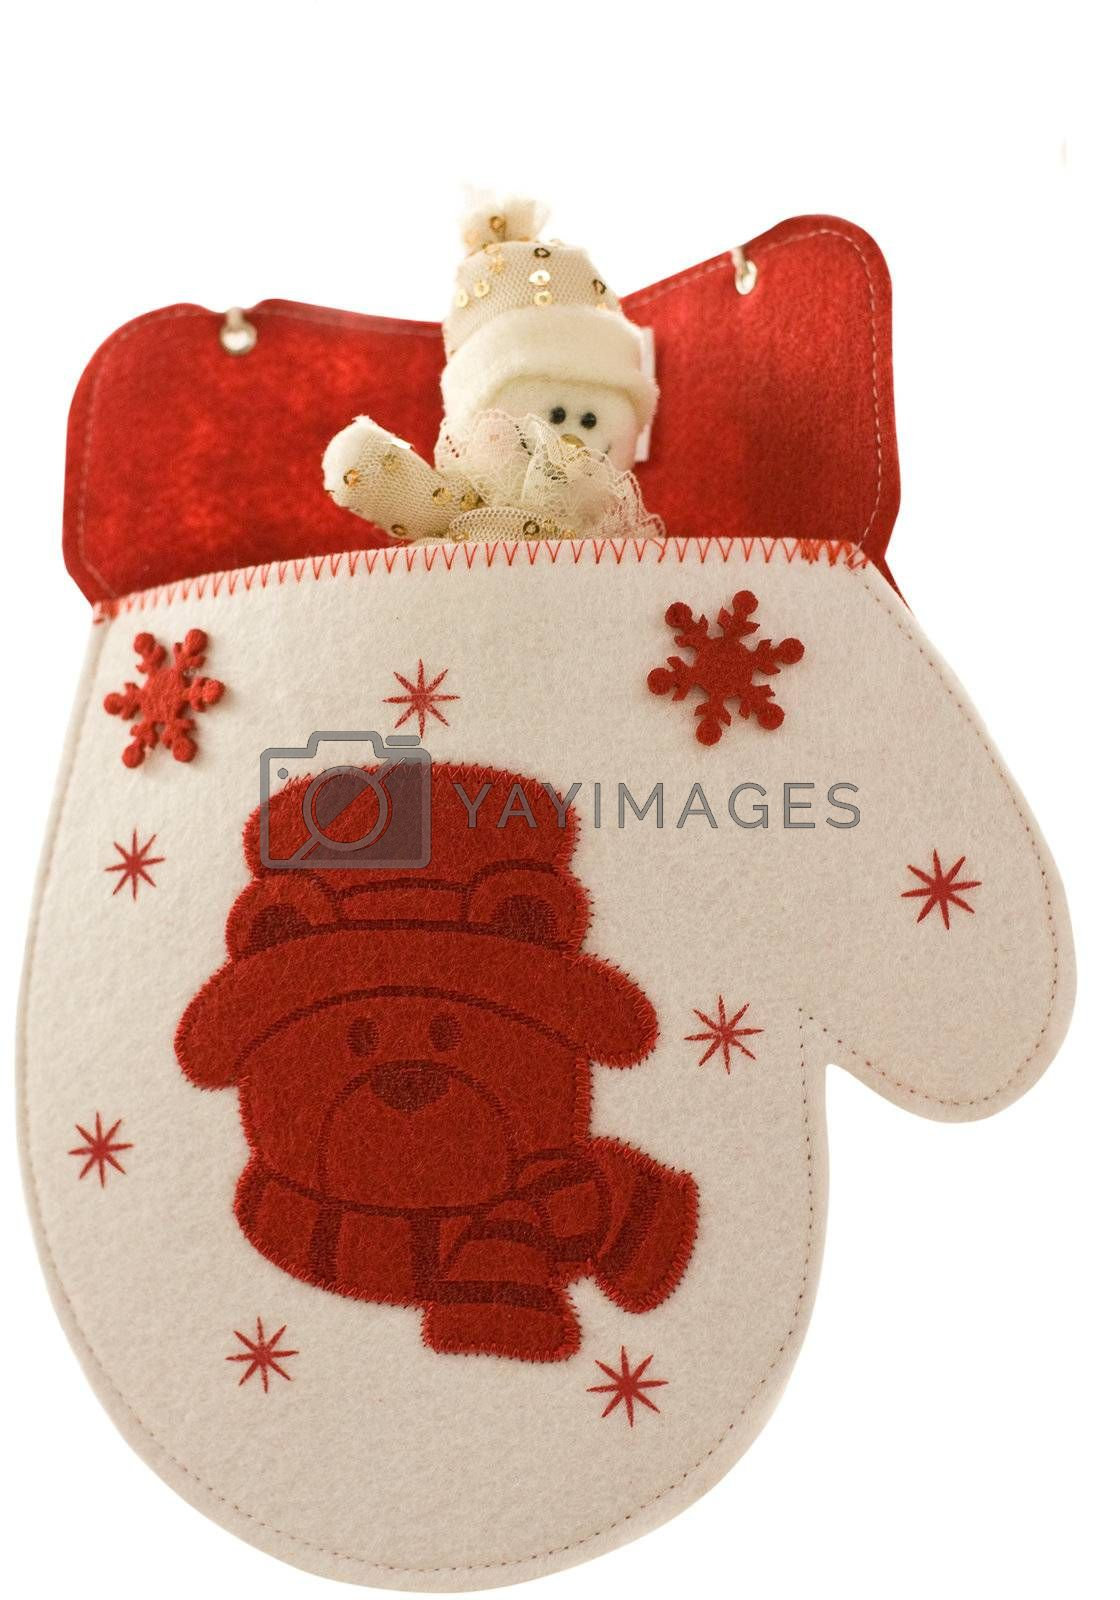 Christmas mitten with little toy snowman